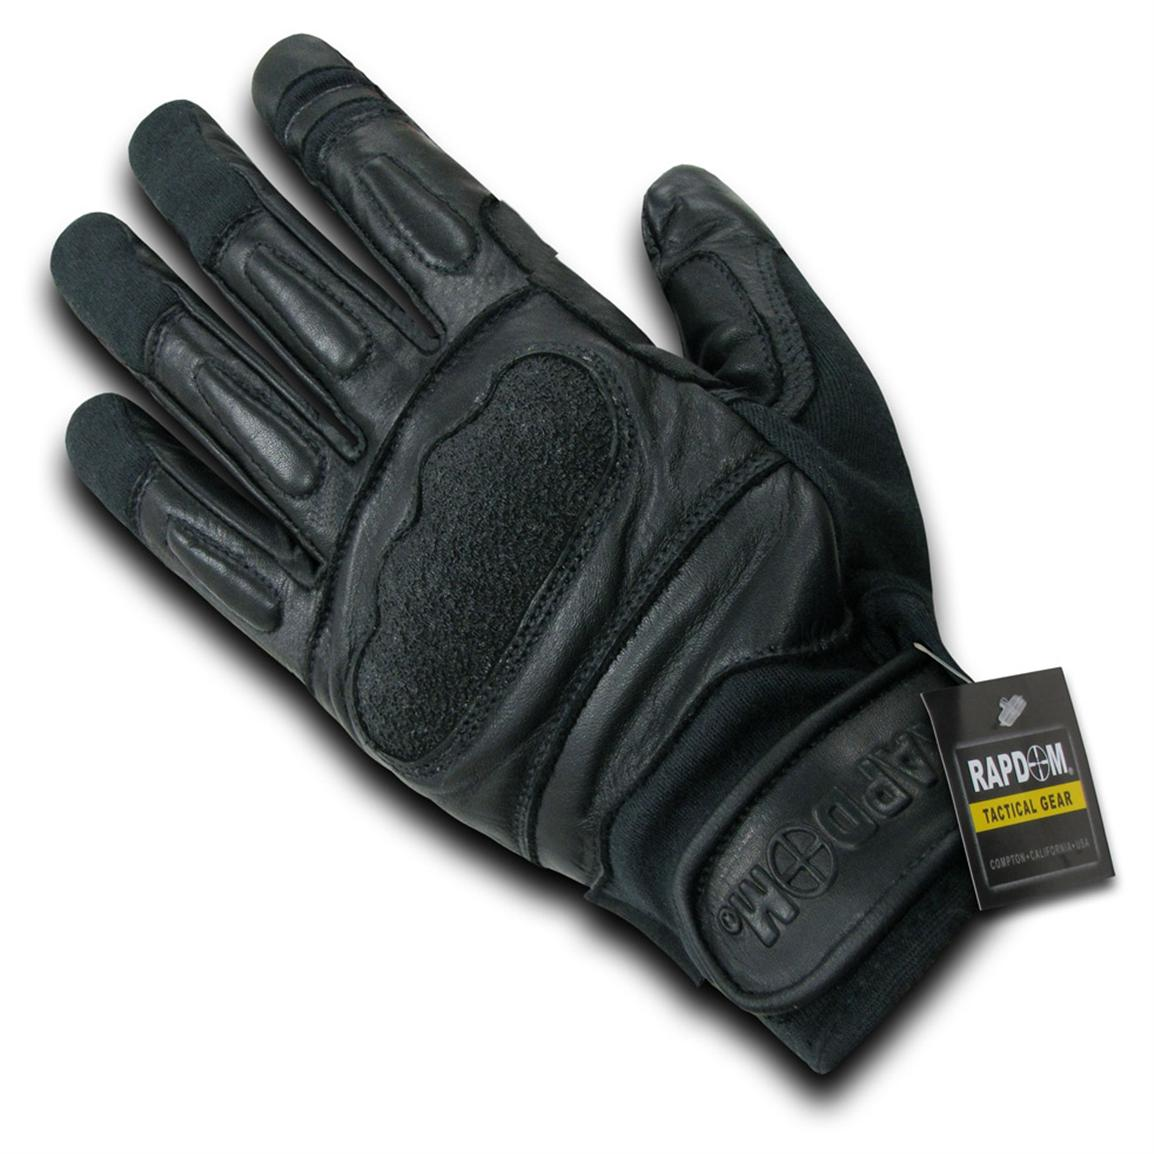 Rapid Dominance Tactical Gloves with Kevlar®, Black